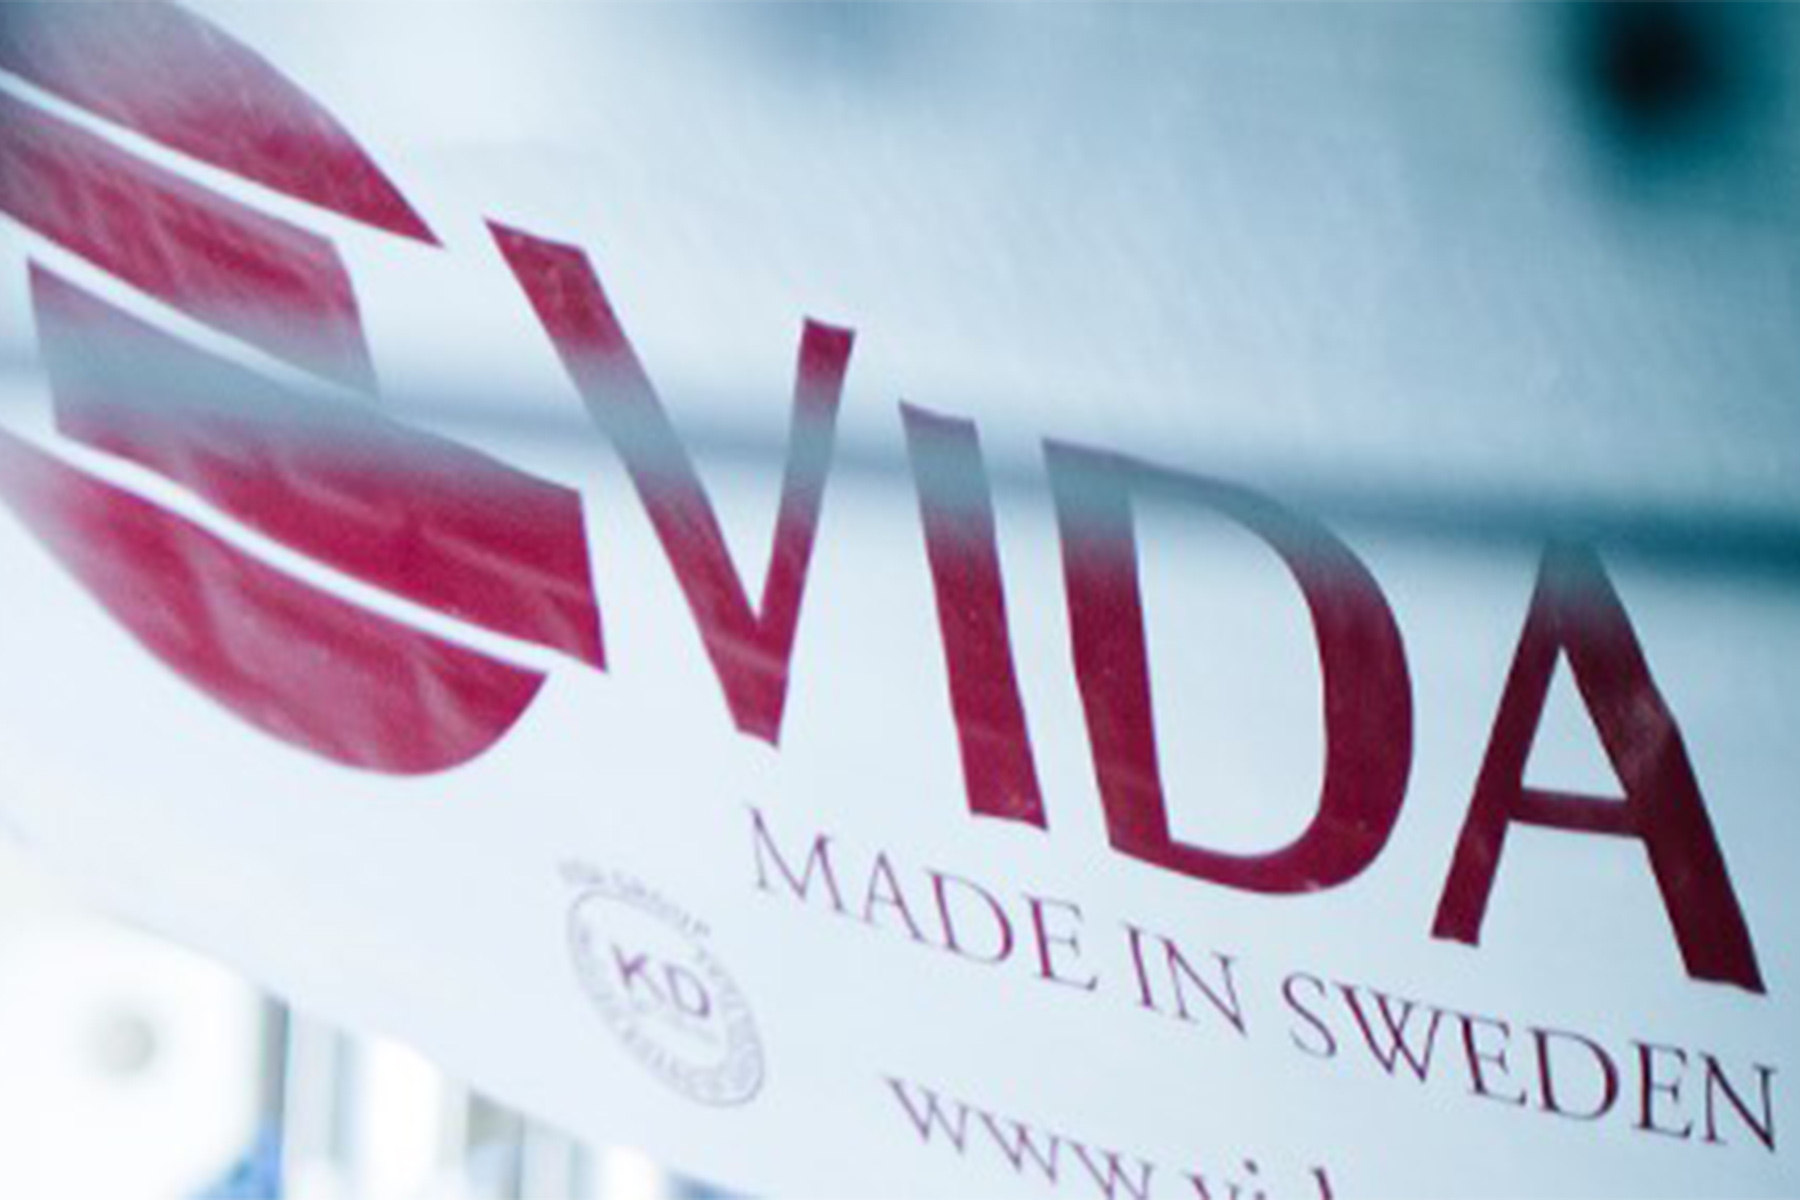 Vida acquires Berg's Swedish sawmill